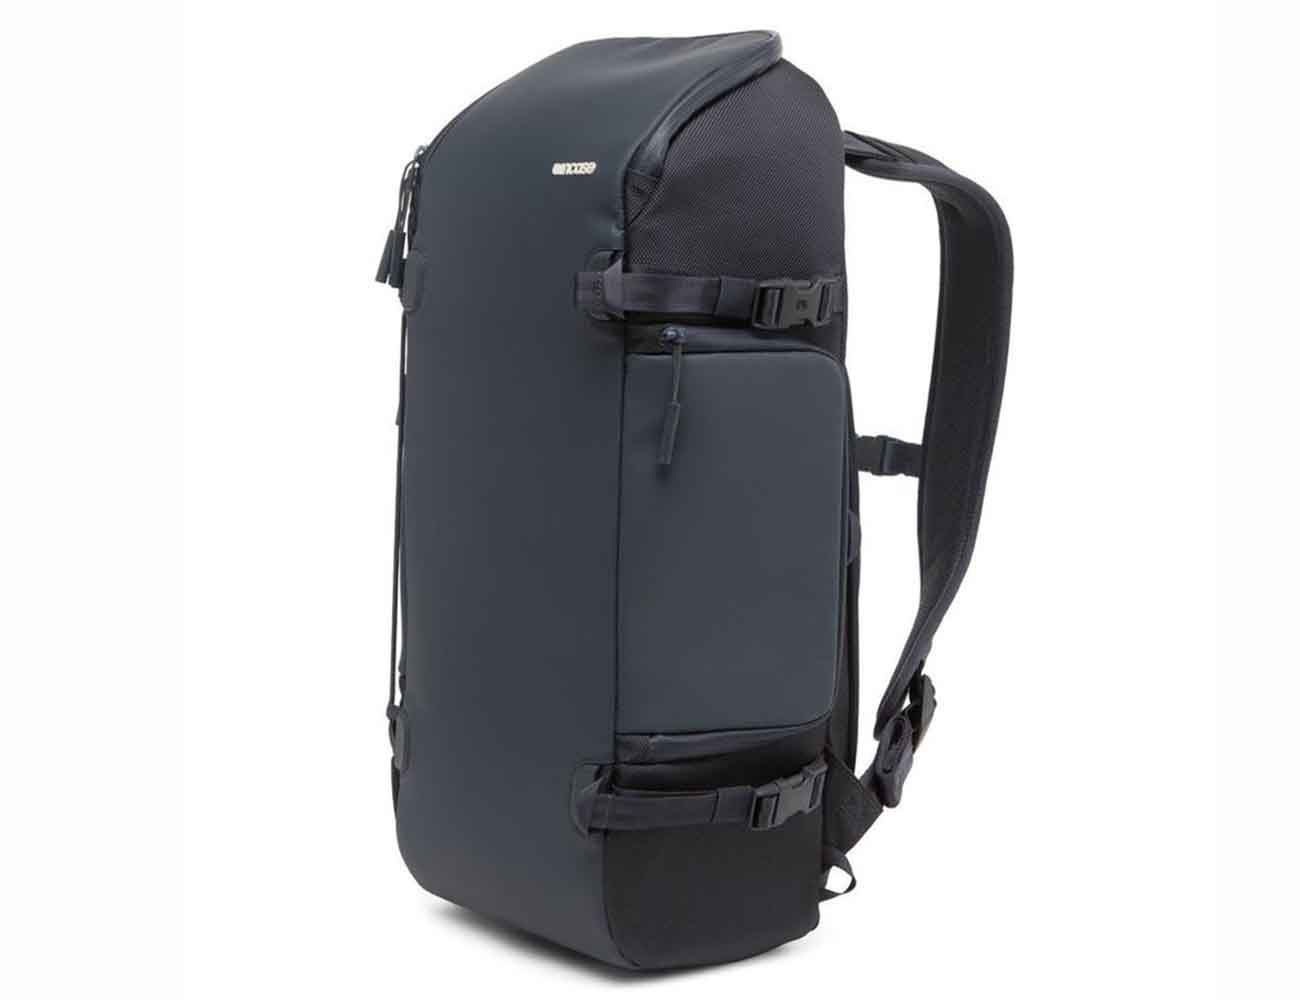 Kelly Slater Action CameraPro Pack For GoPro and iPad by Incase